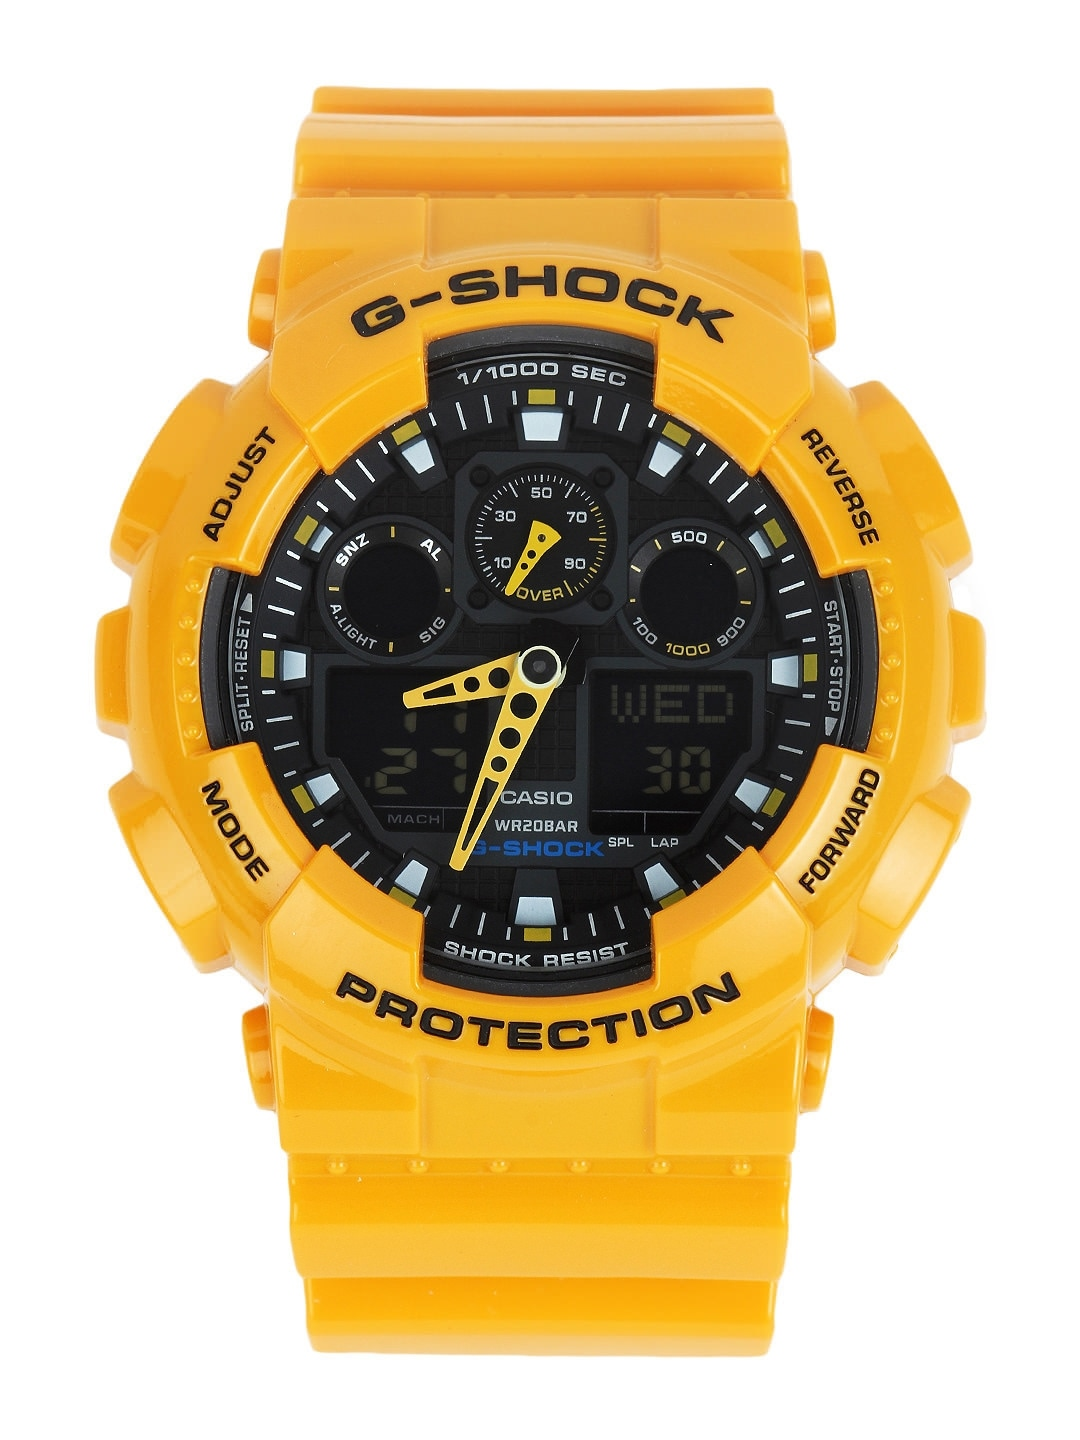 234e45299df G Shock - Buy G Shock watches Online in India